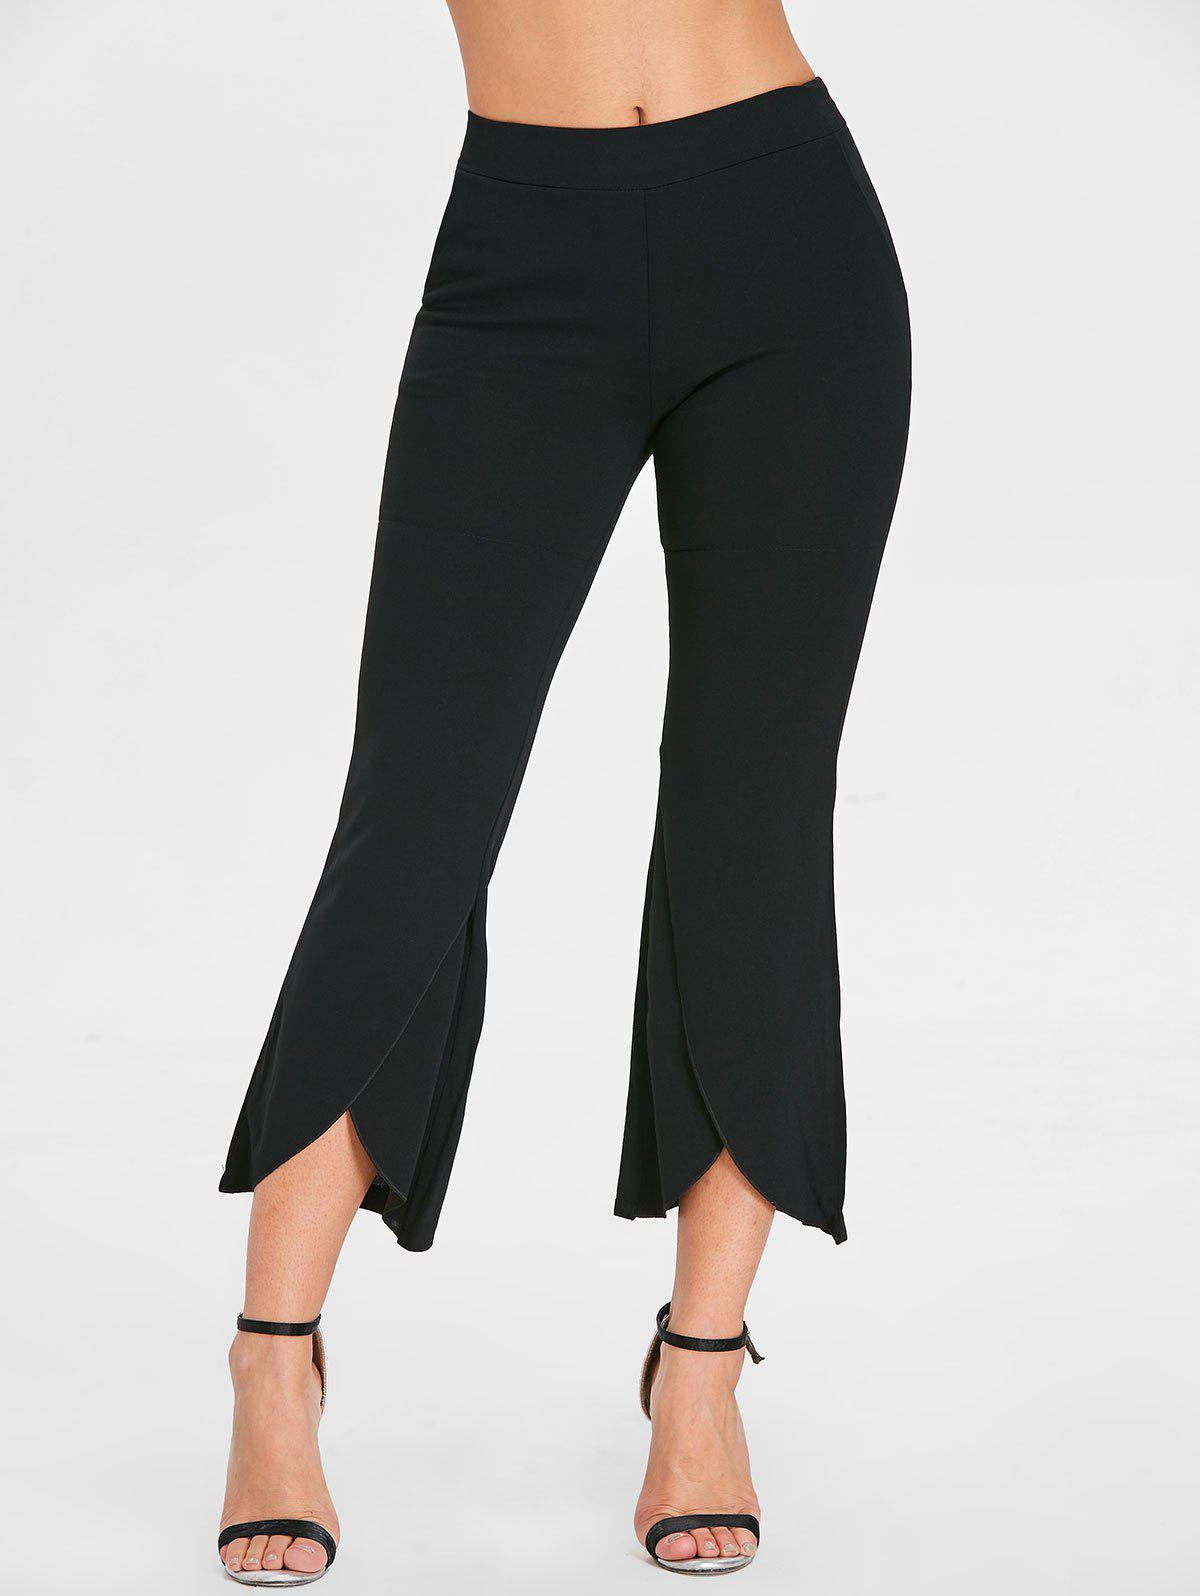 High Waist Ninth Flare Pants - BLACK L